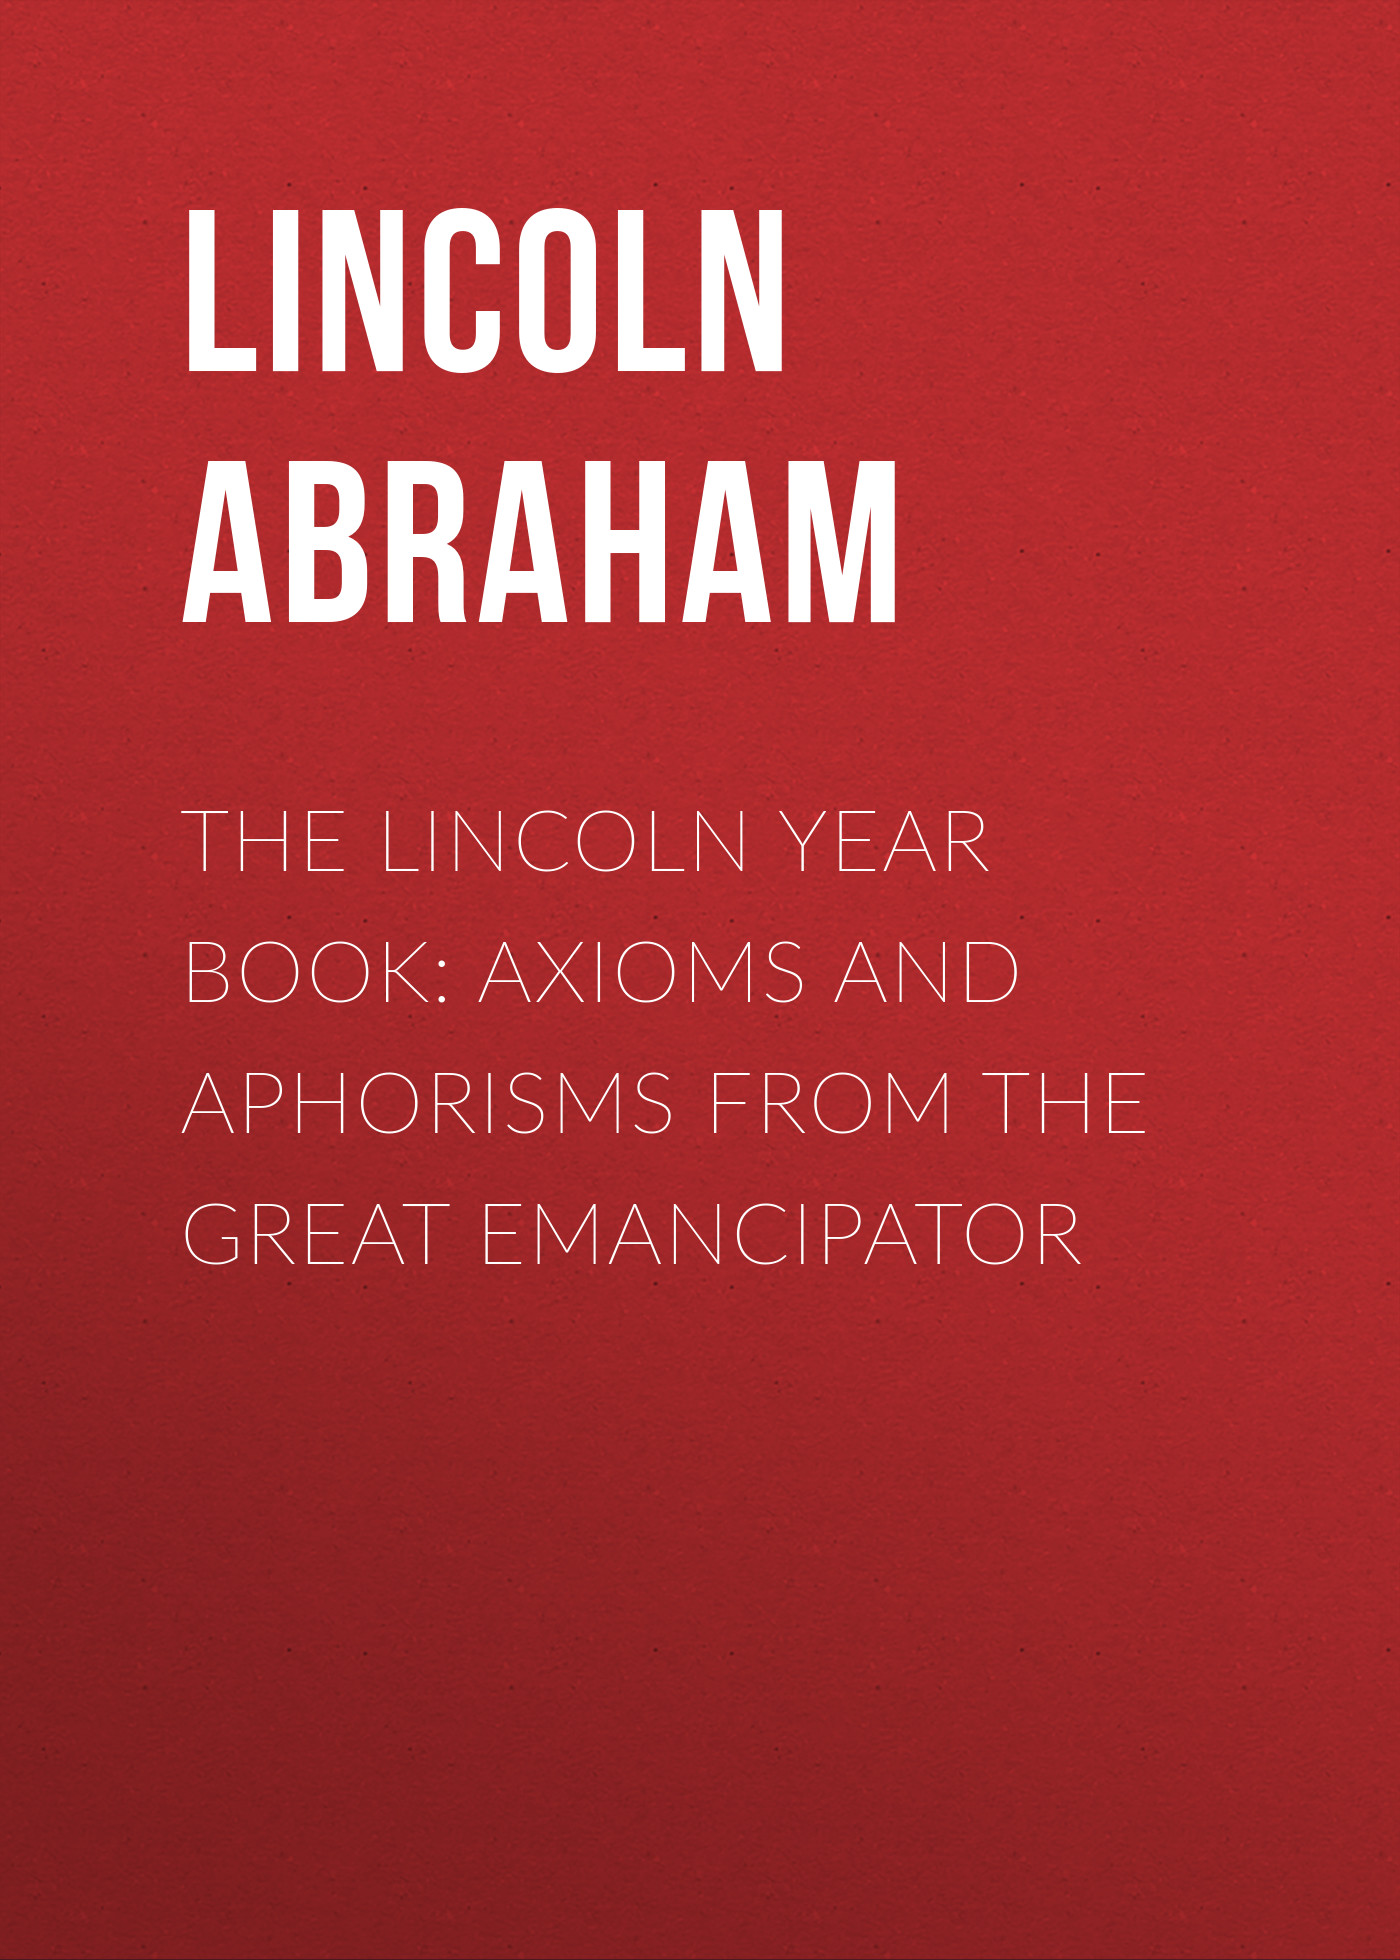 Фото - Lincoln Abraham The Lincoln Year Book: Axioms and Aphorisms from the Great Emancipator year book trotting and pacing